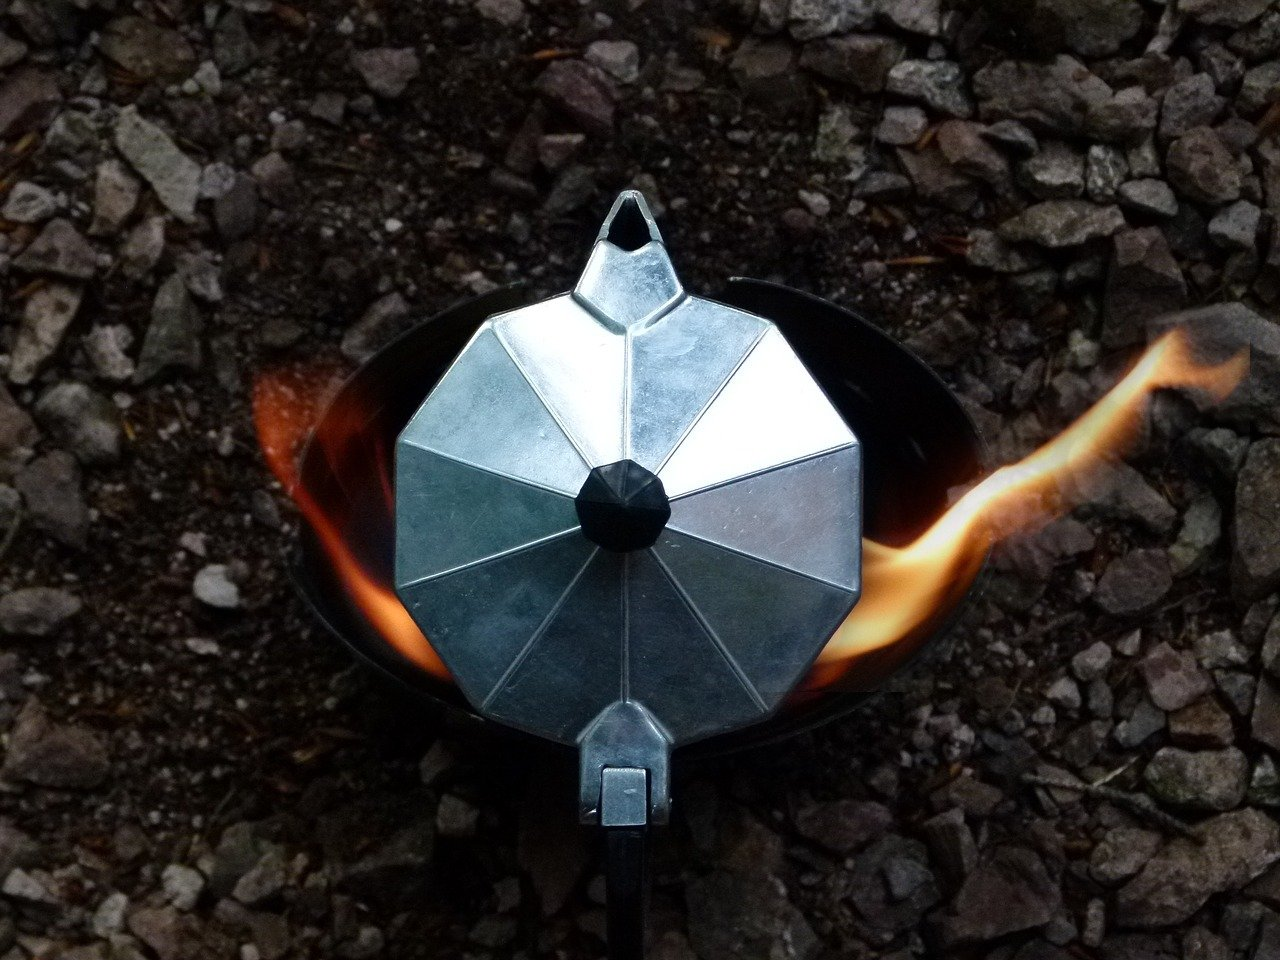 A coffee percolator is a camping essential for some